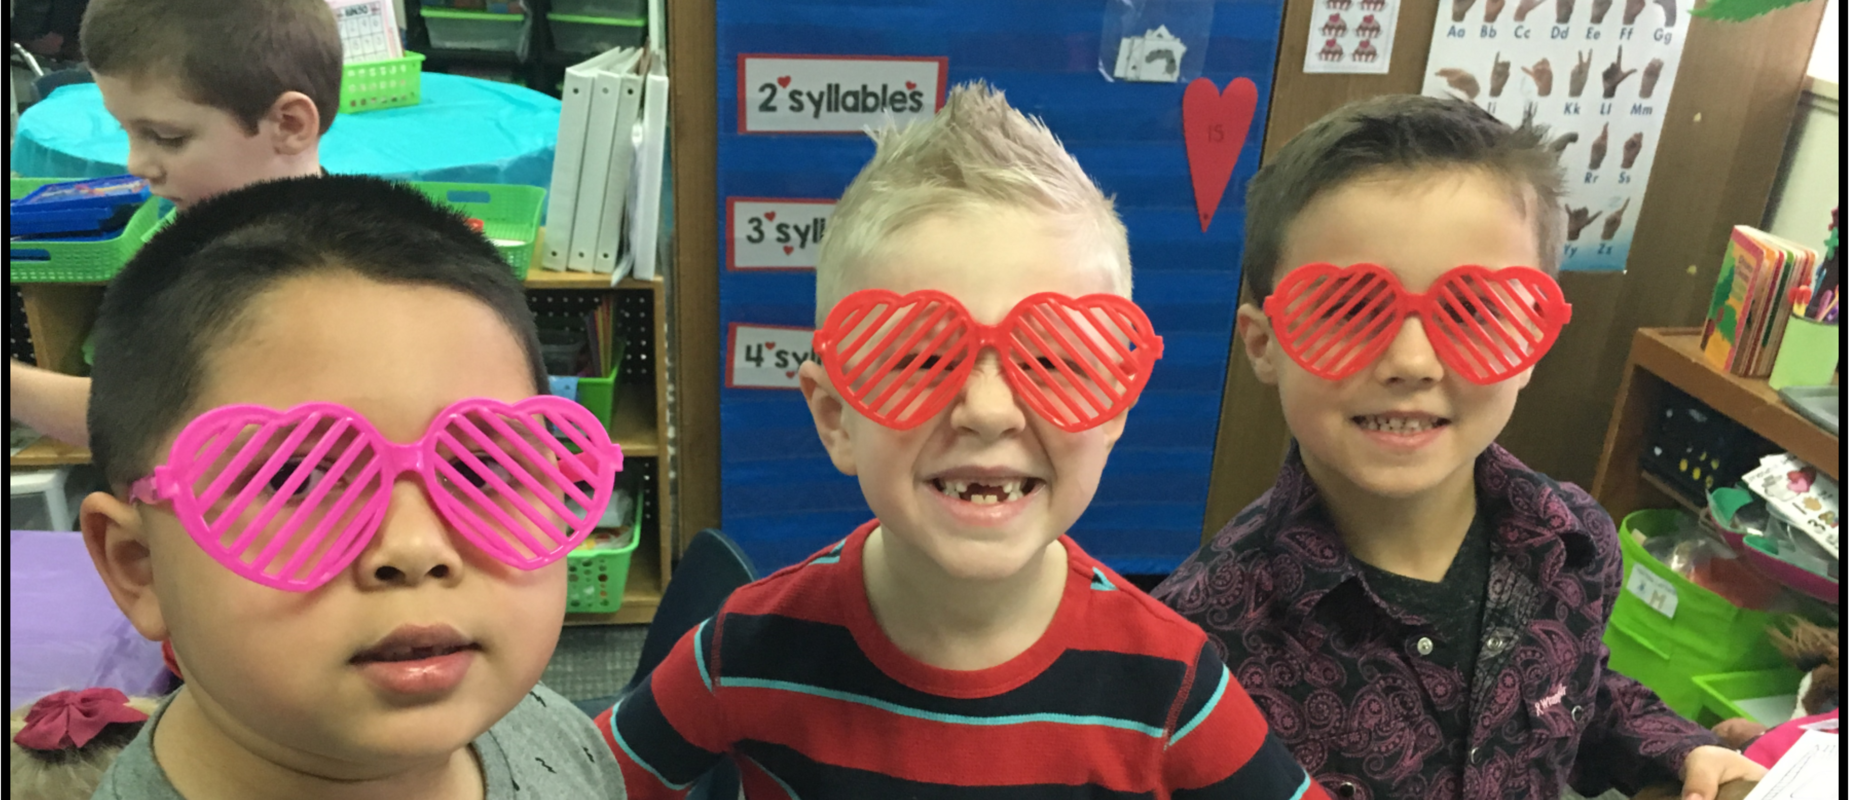 students wearing silly glasses